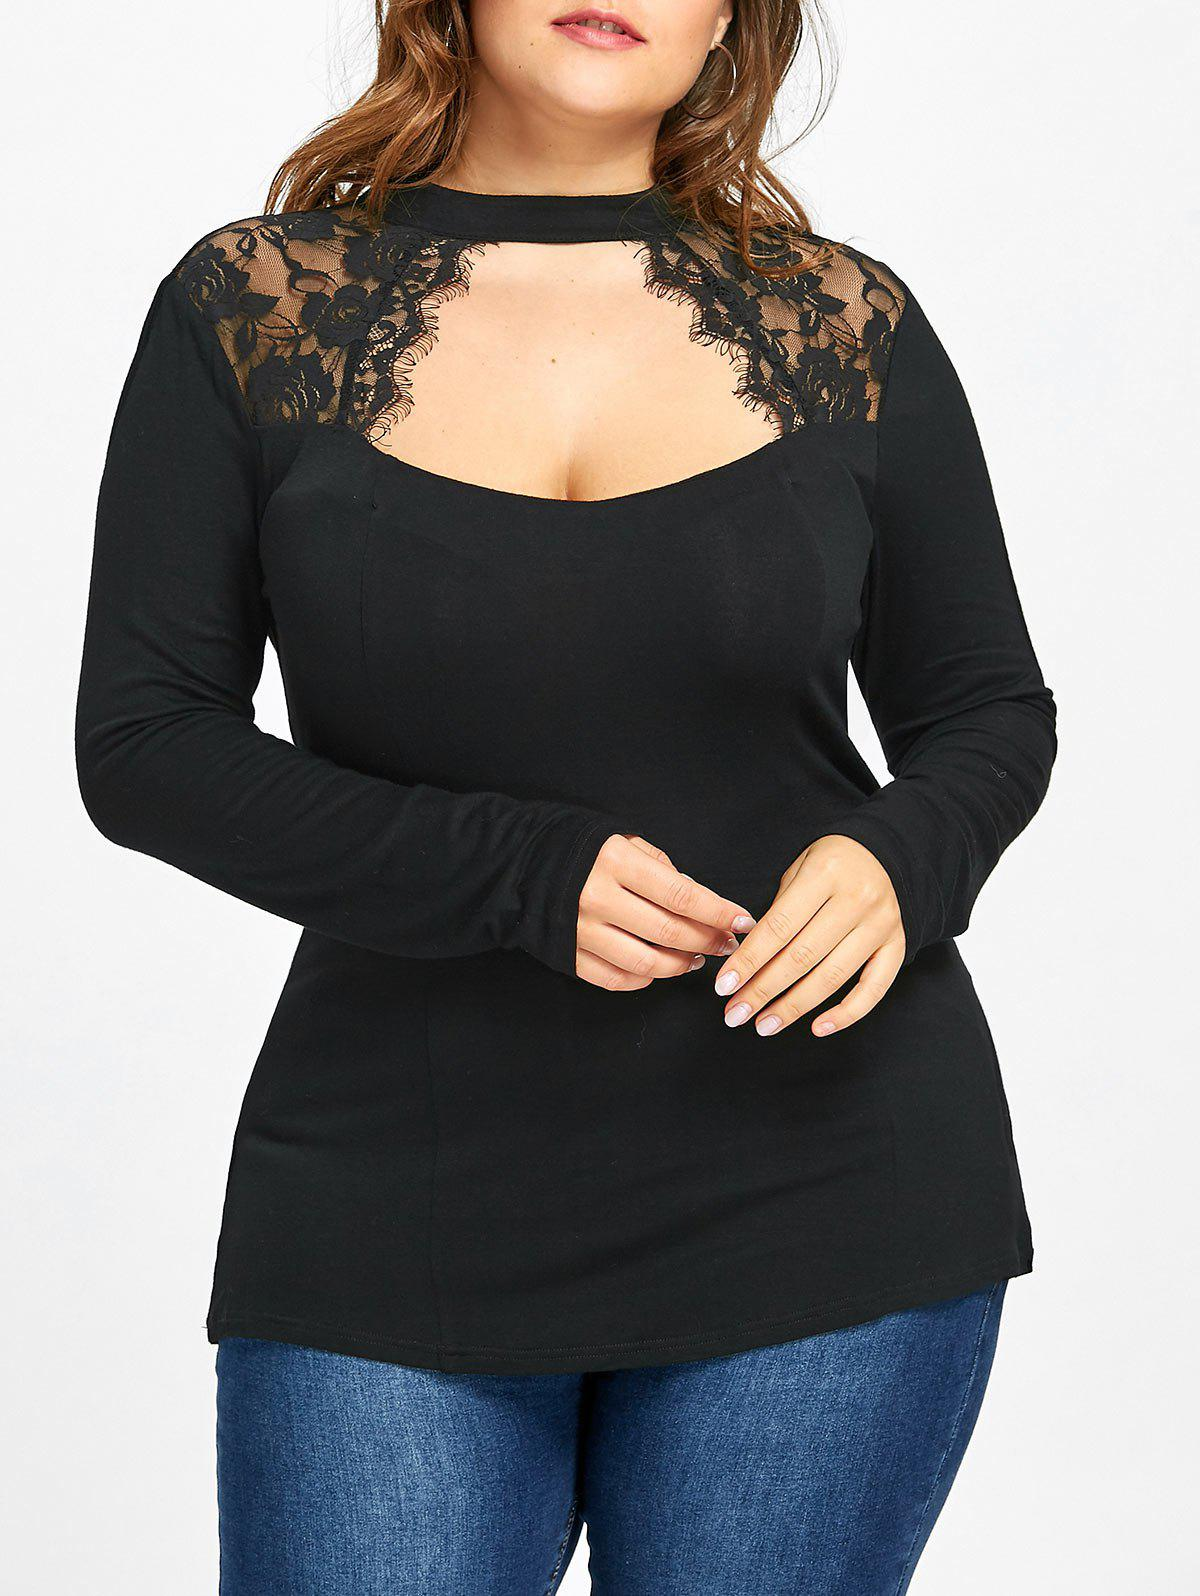 Plus Size Lace Panel Keyhole Top sheer lace panel plus size leggings